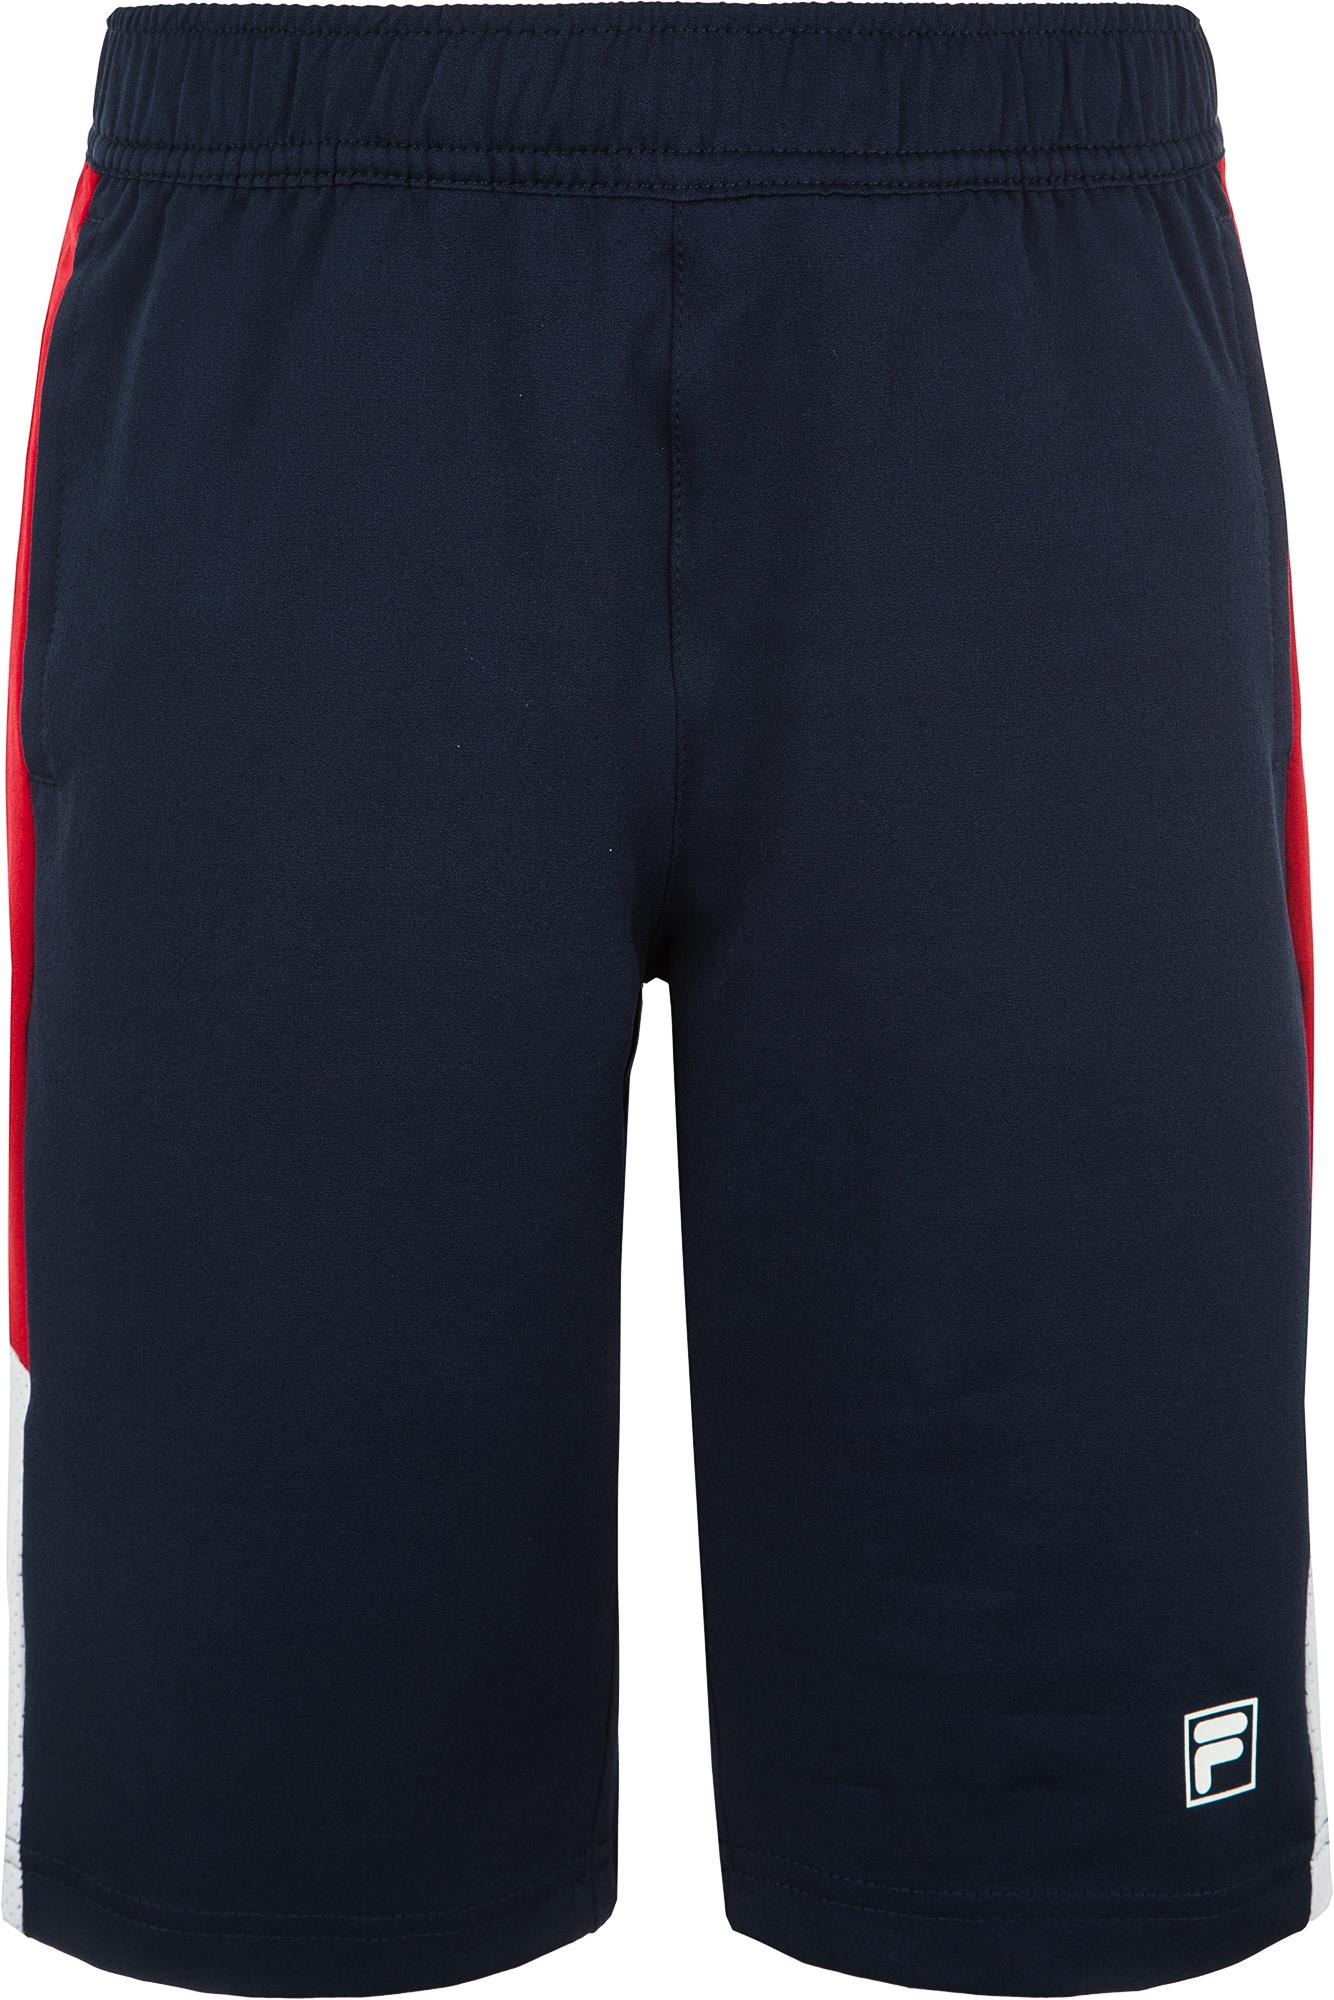 Шорты Fila Boys Tennis Shorts